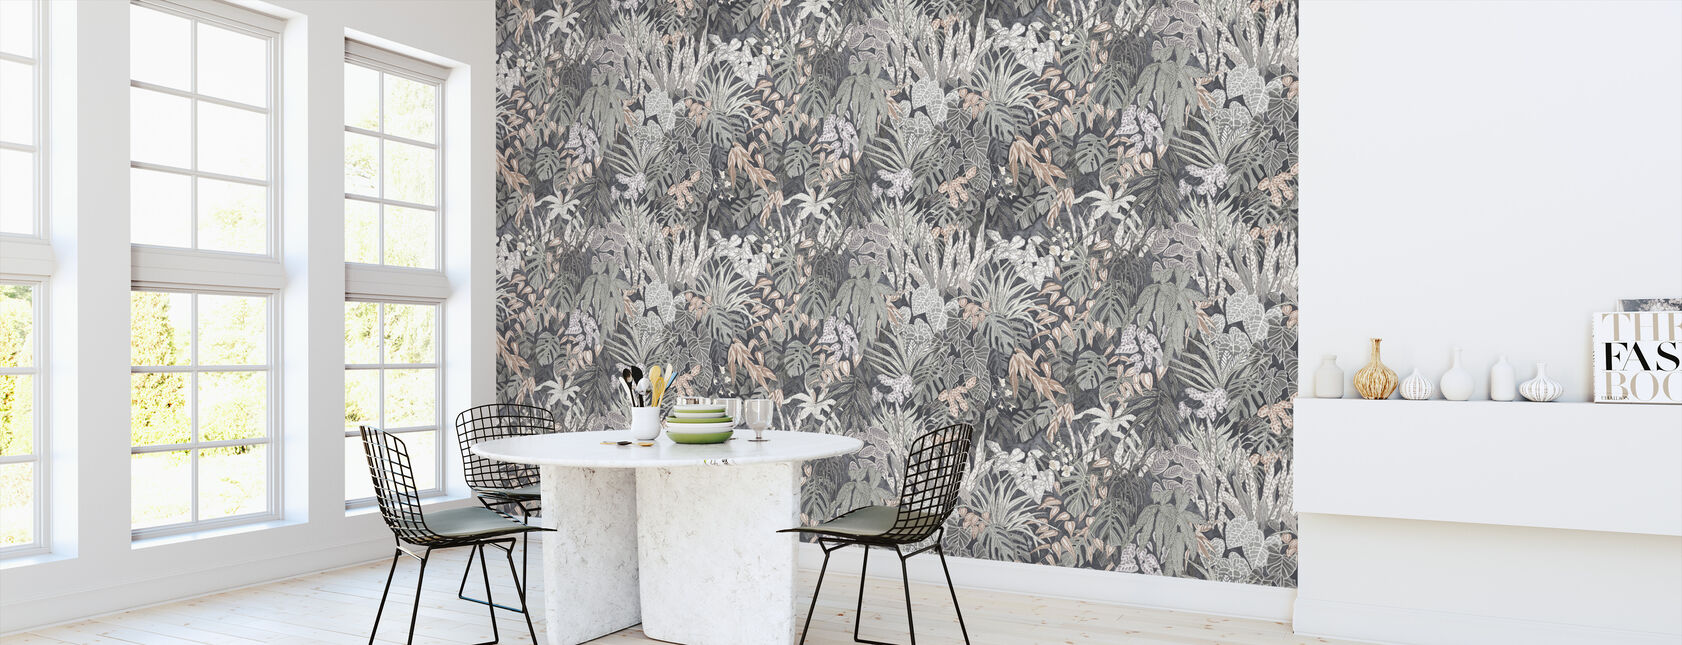 Tanglewood Forest Silver Ash - Wallpaper - Kitchen